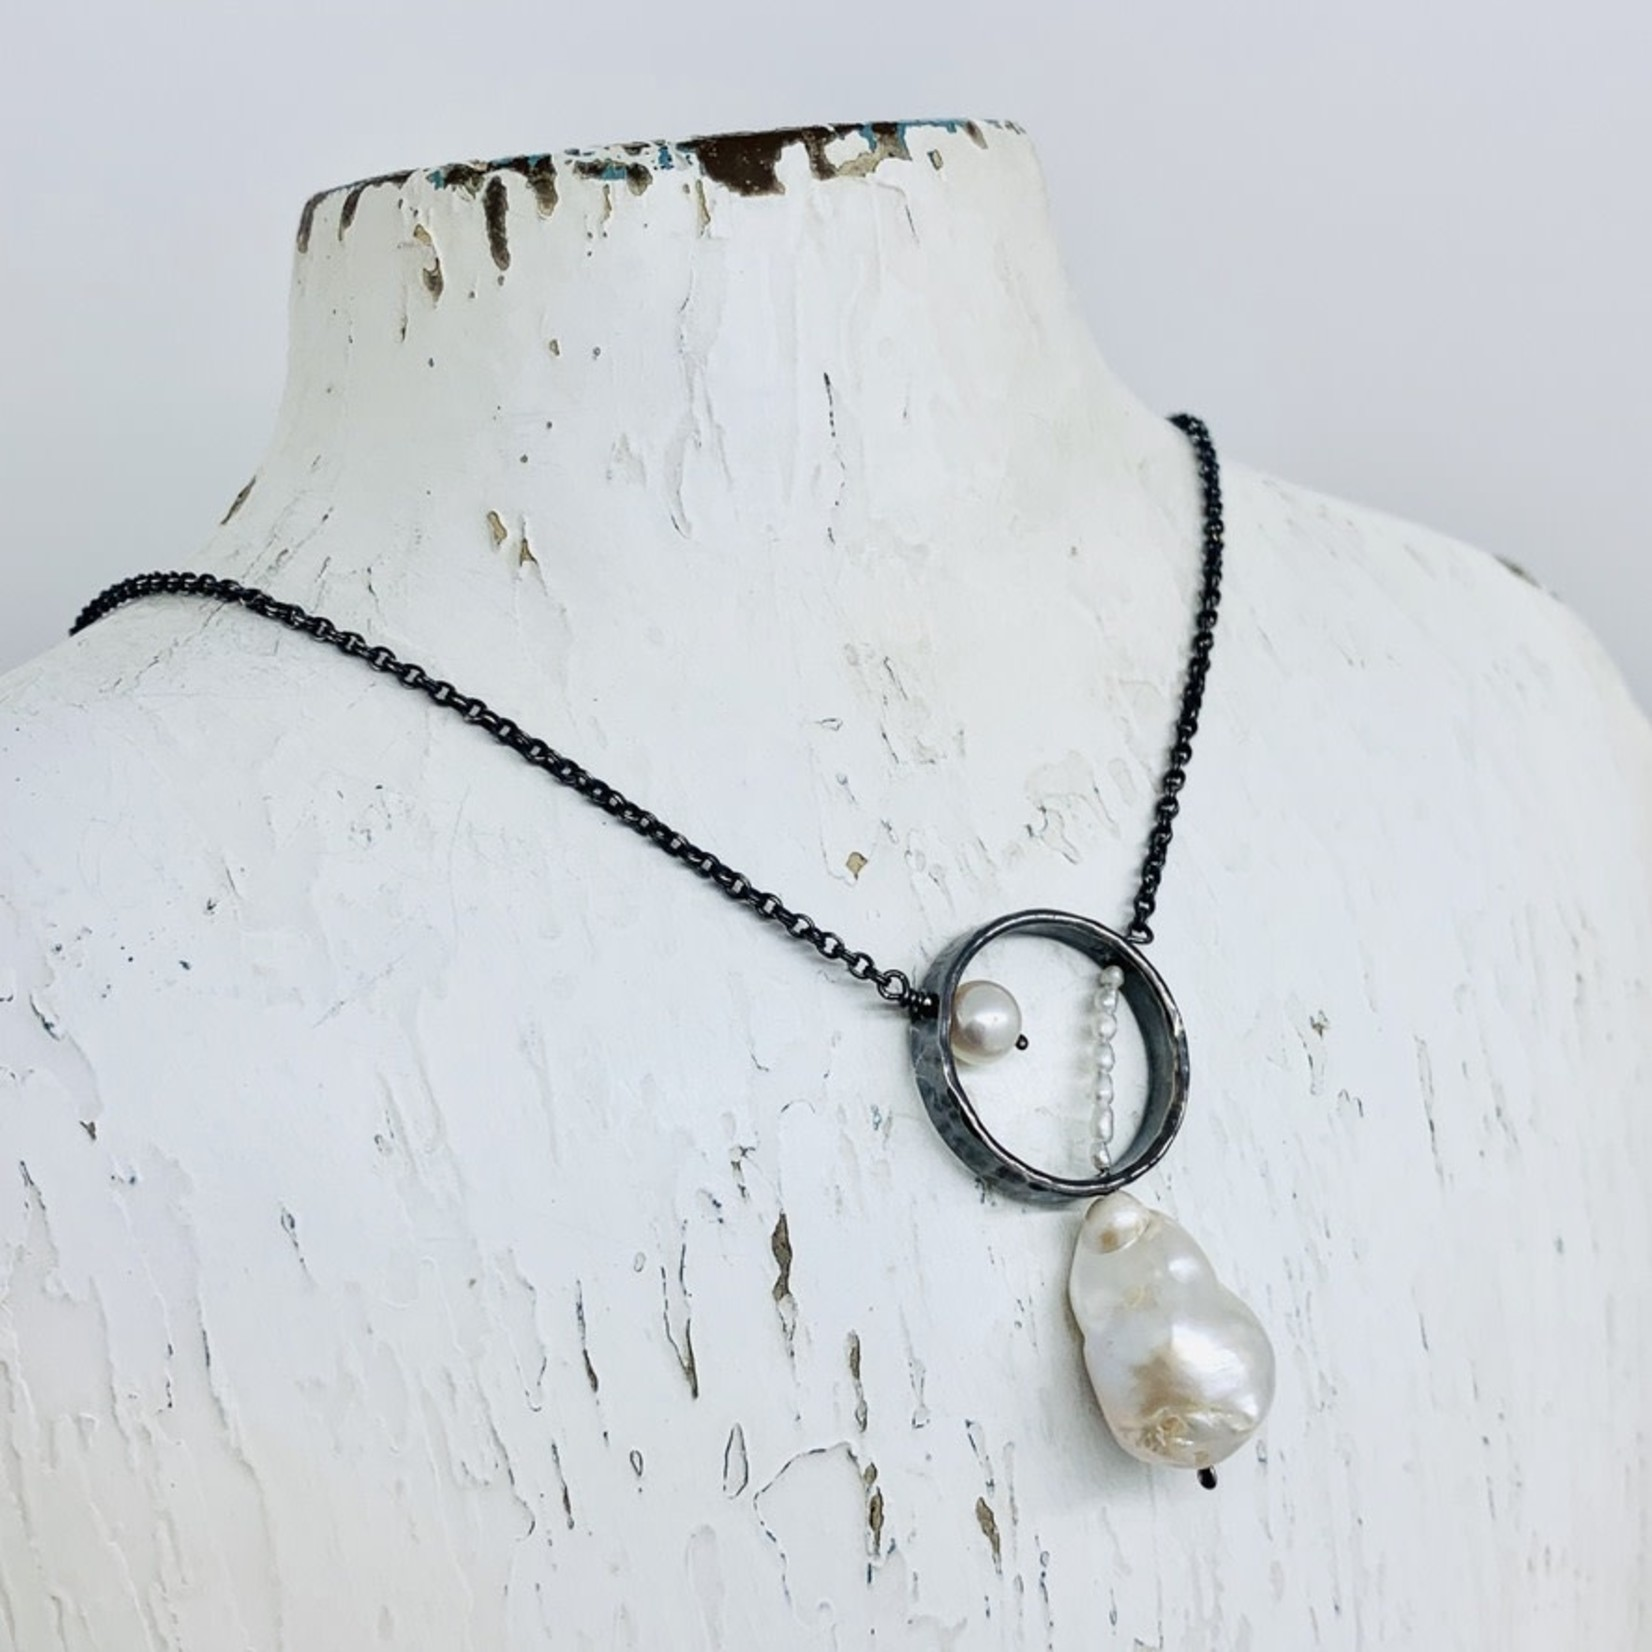 EVANKNOX Handmade Necklace with oxidized hammered ring, baroque pearl, white pearl, stack white pearls